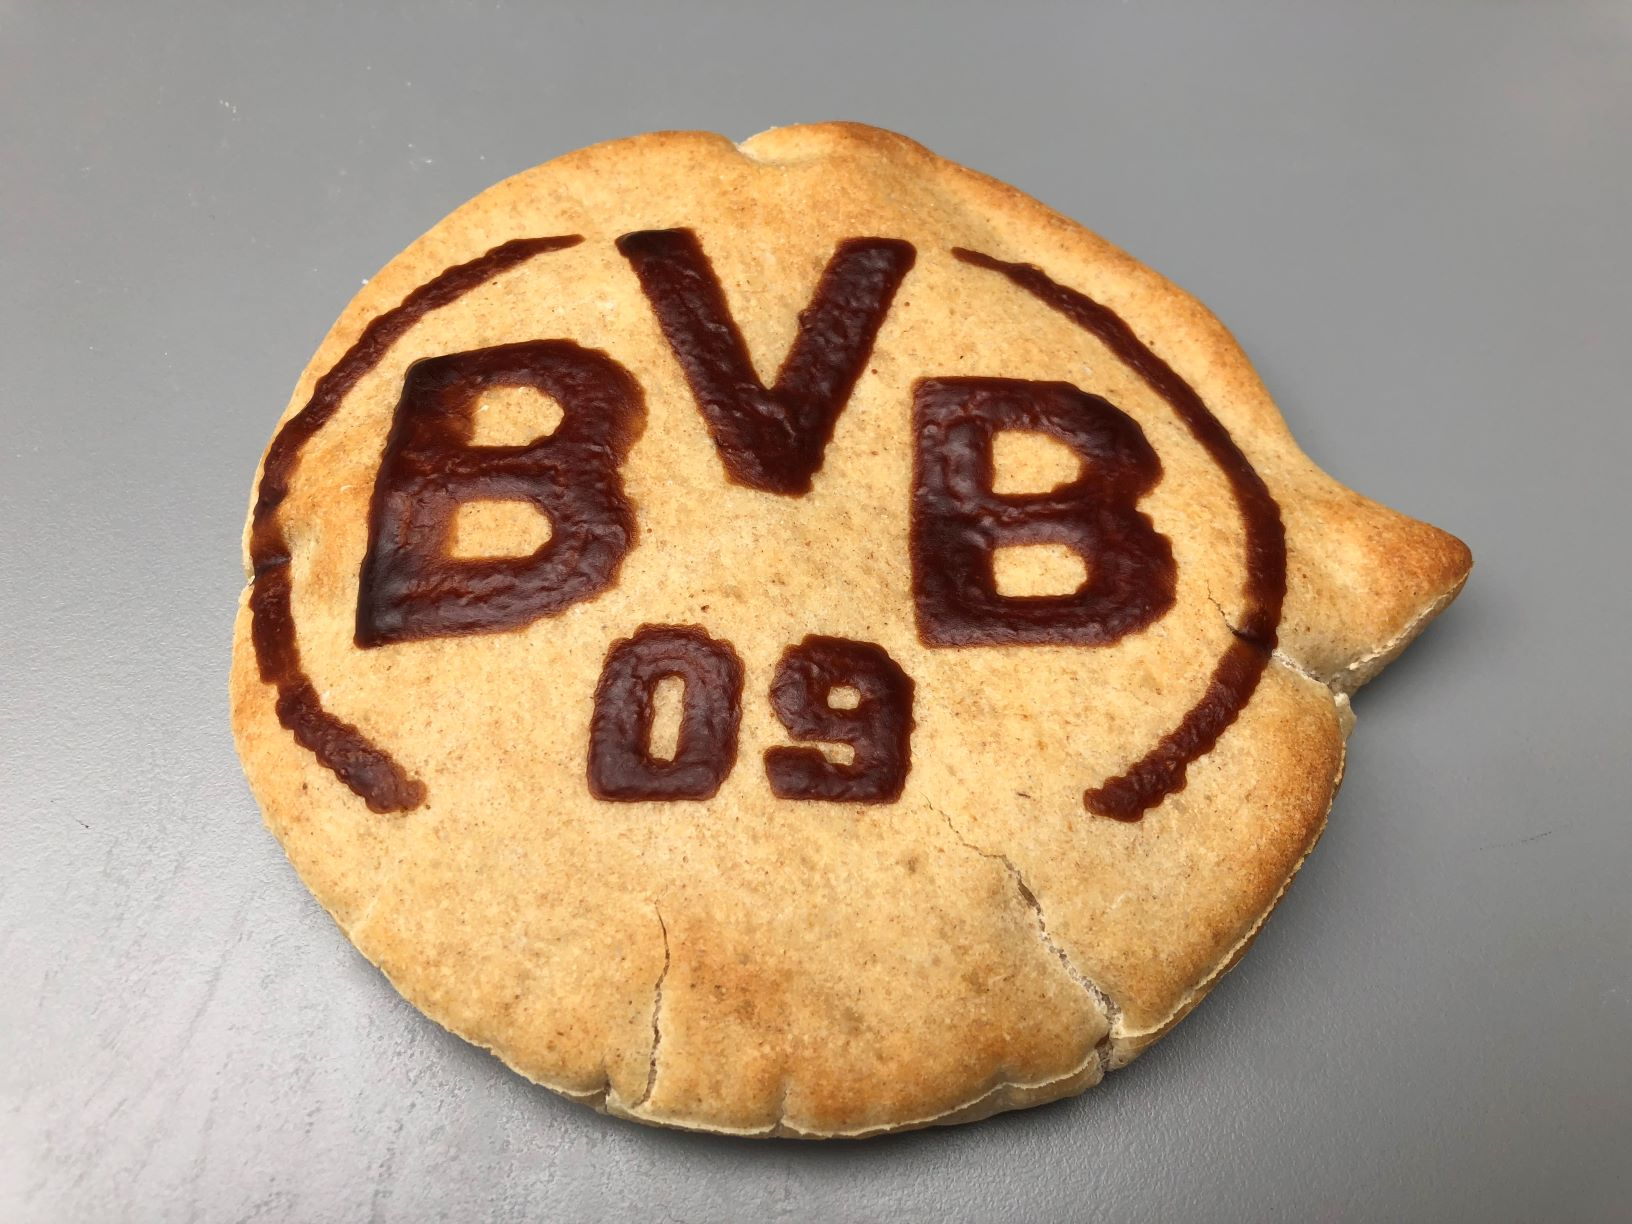 Bun decorated with BVB logo made with RudinJet by FoodJet bread decorator